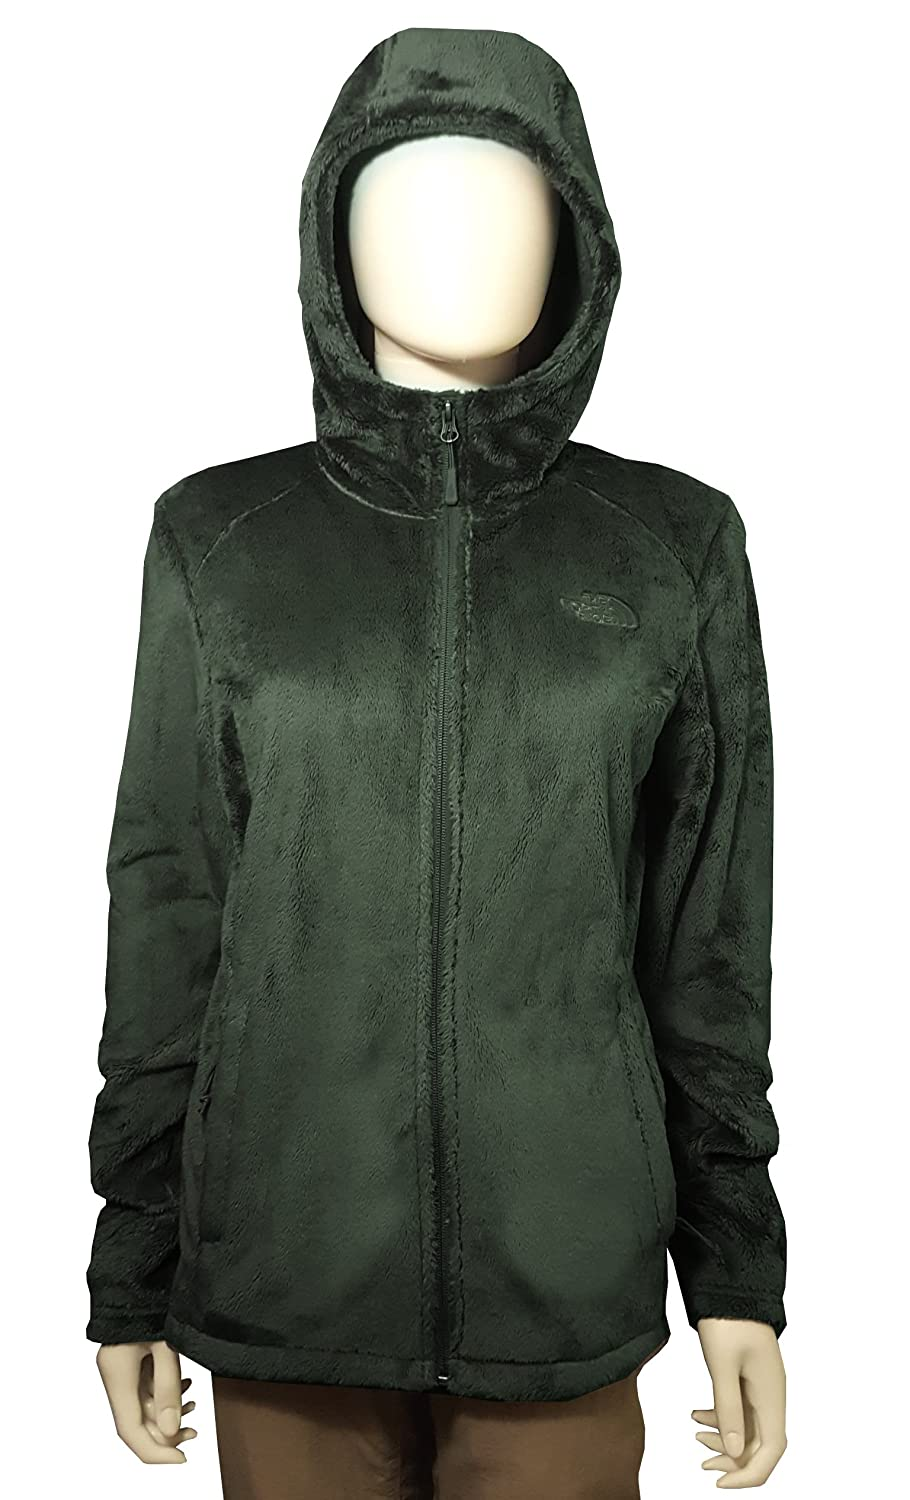 6bb56f535 Amazon.com: The North Face Women's Osito Hoodie Jacket (X-Small ...